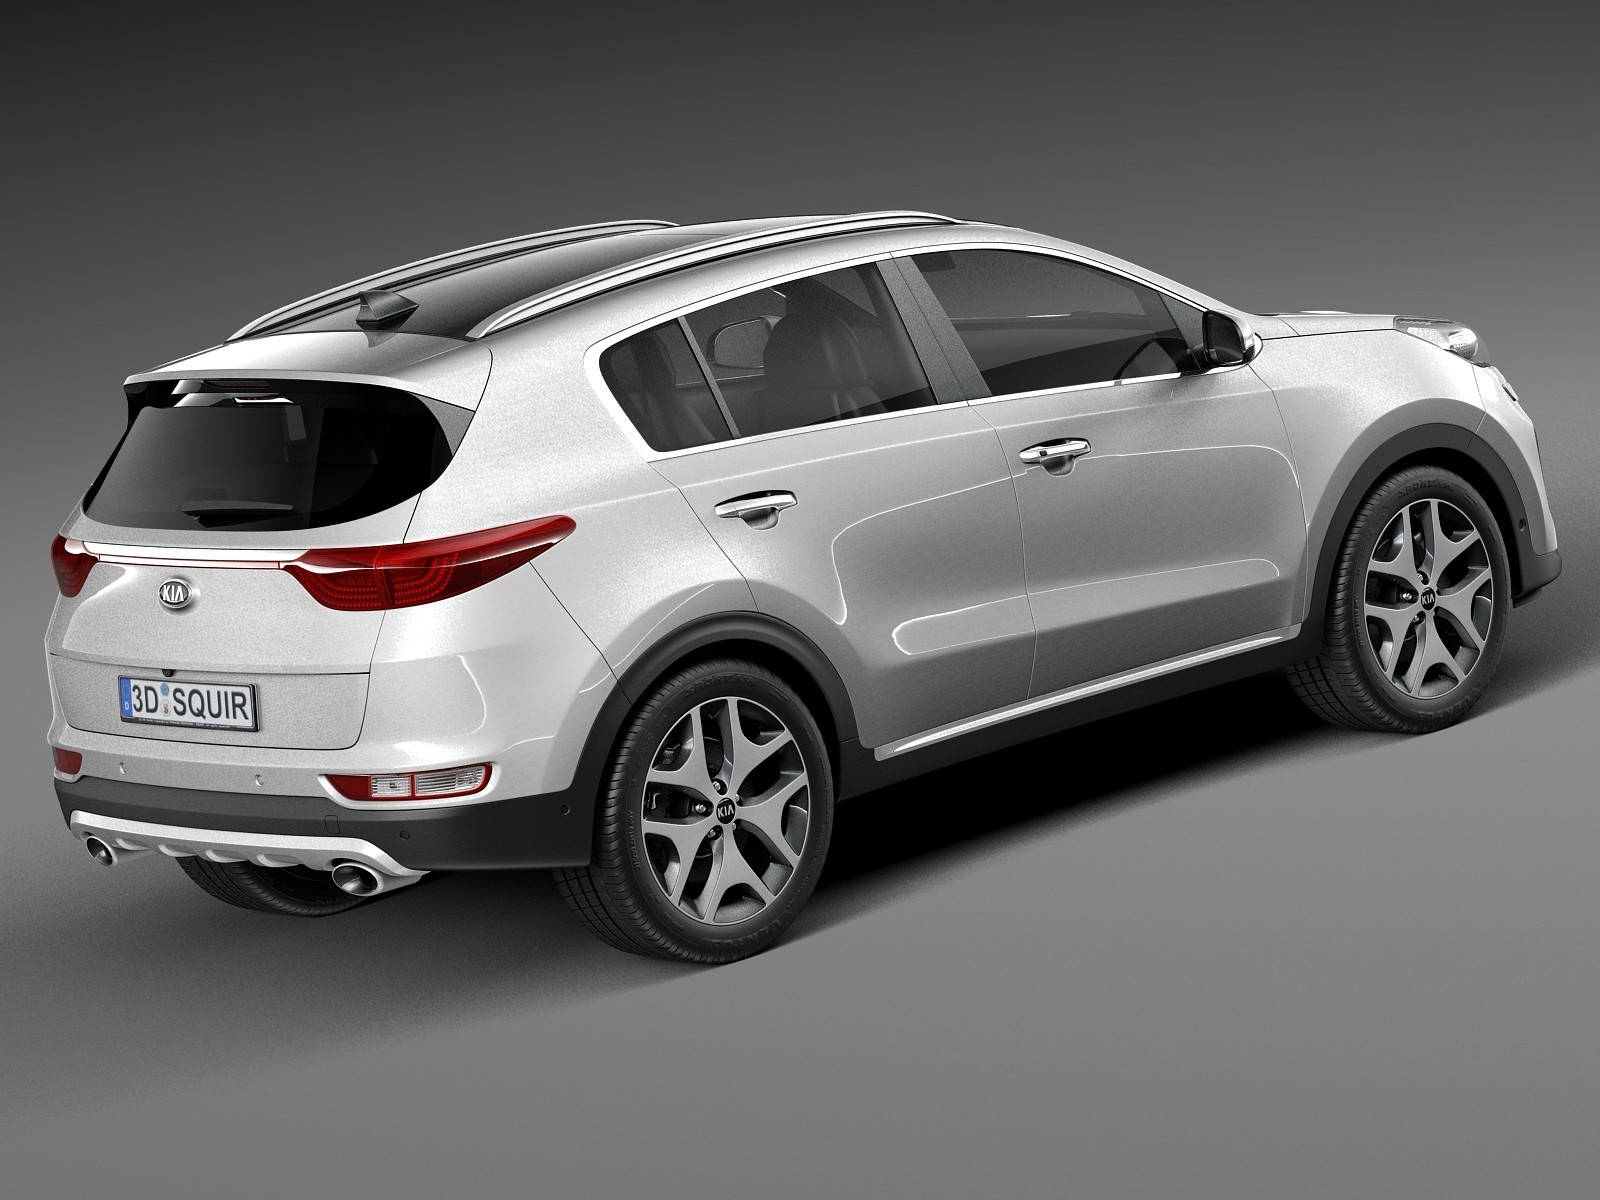 2016-kia-sportage-photos-leaked-via-3d-model-probably-no-but-the-rendings-are-accurate_5